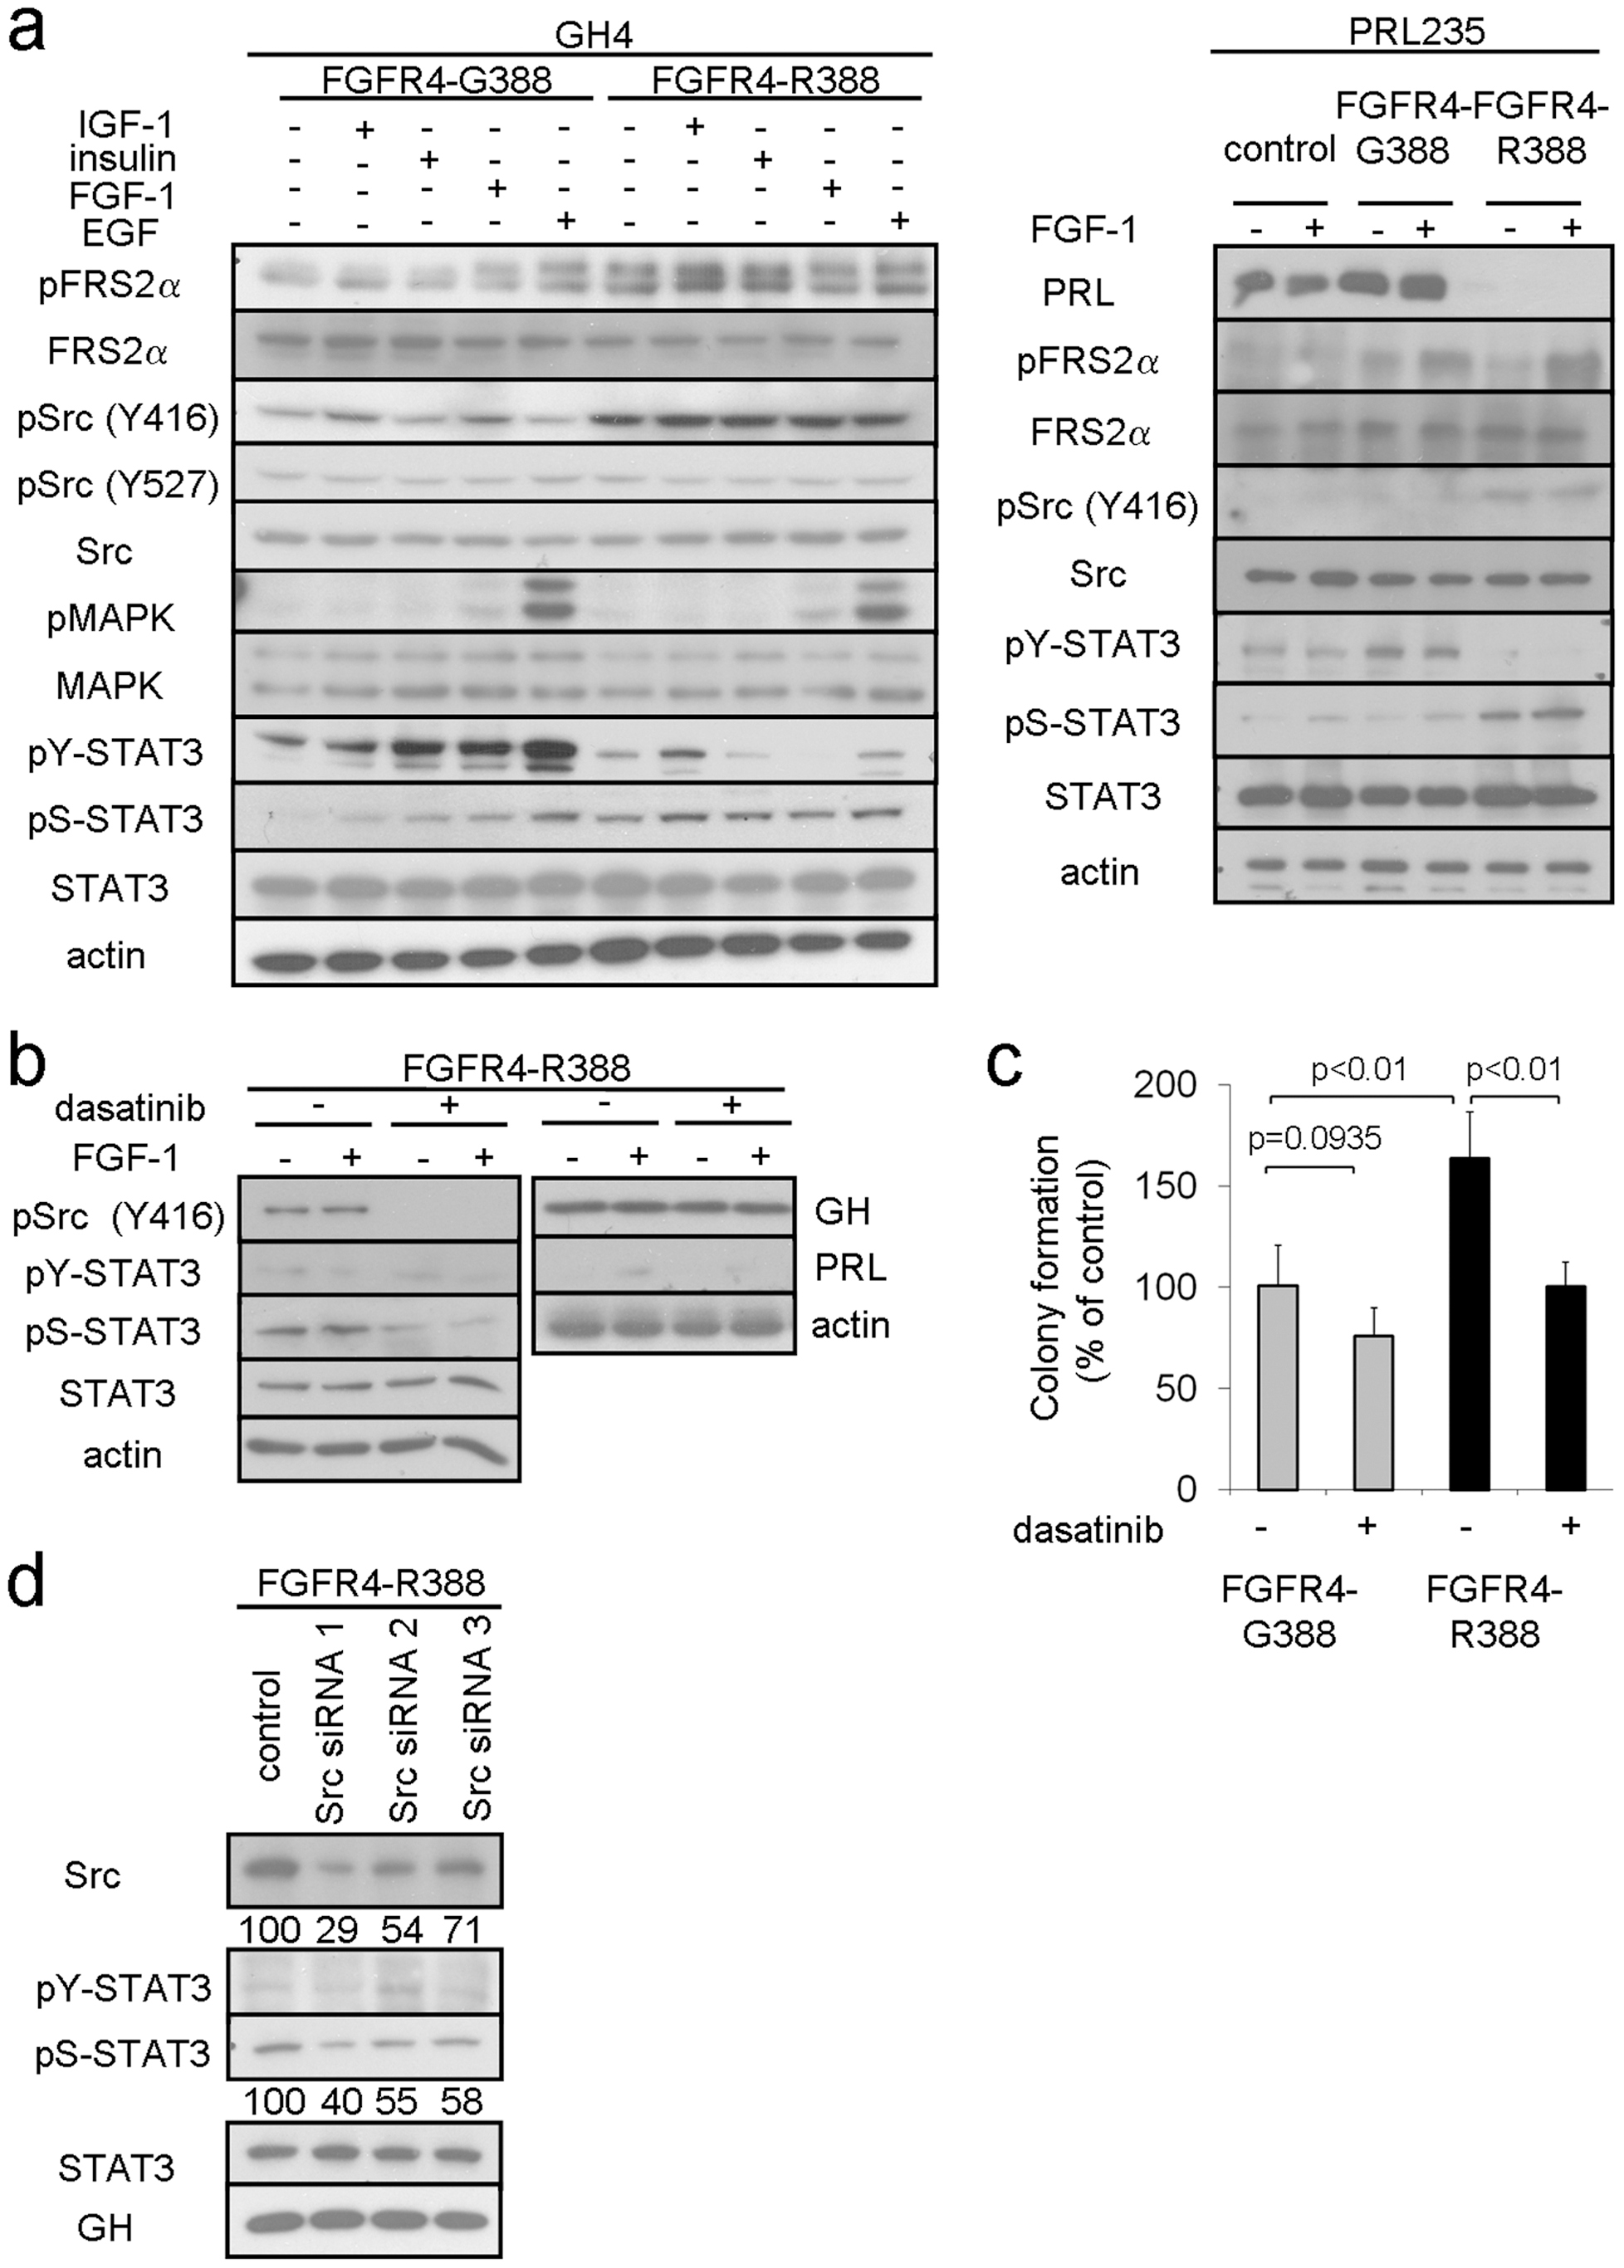 FGFR4-R388 promotes Src and STAT3 signaling in pituitary tumor cells.